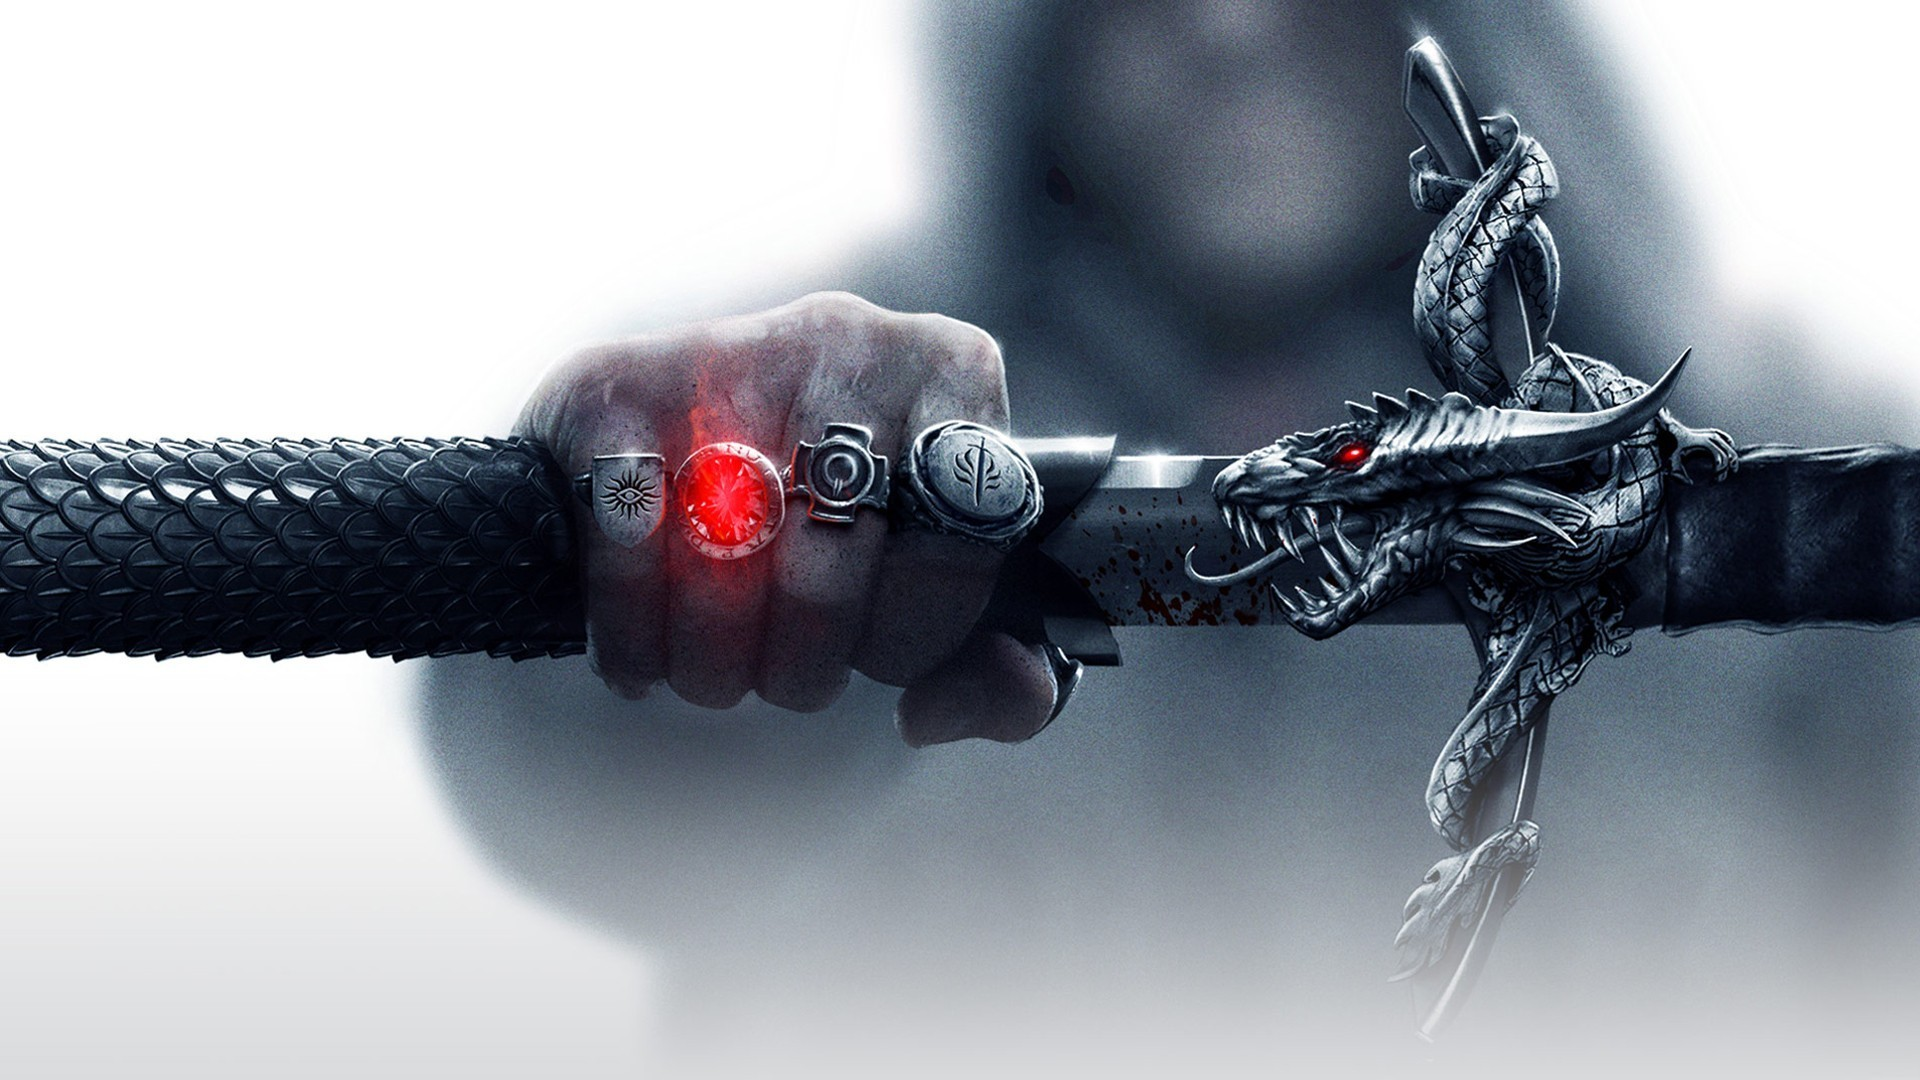 Cool Sword Wallpapers 60 Images